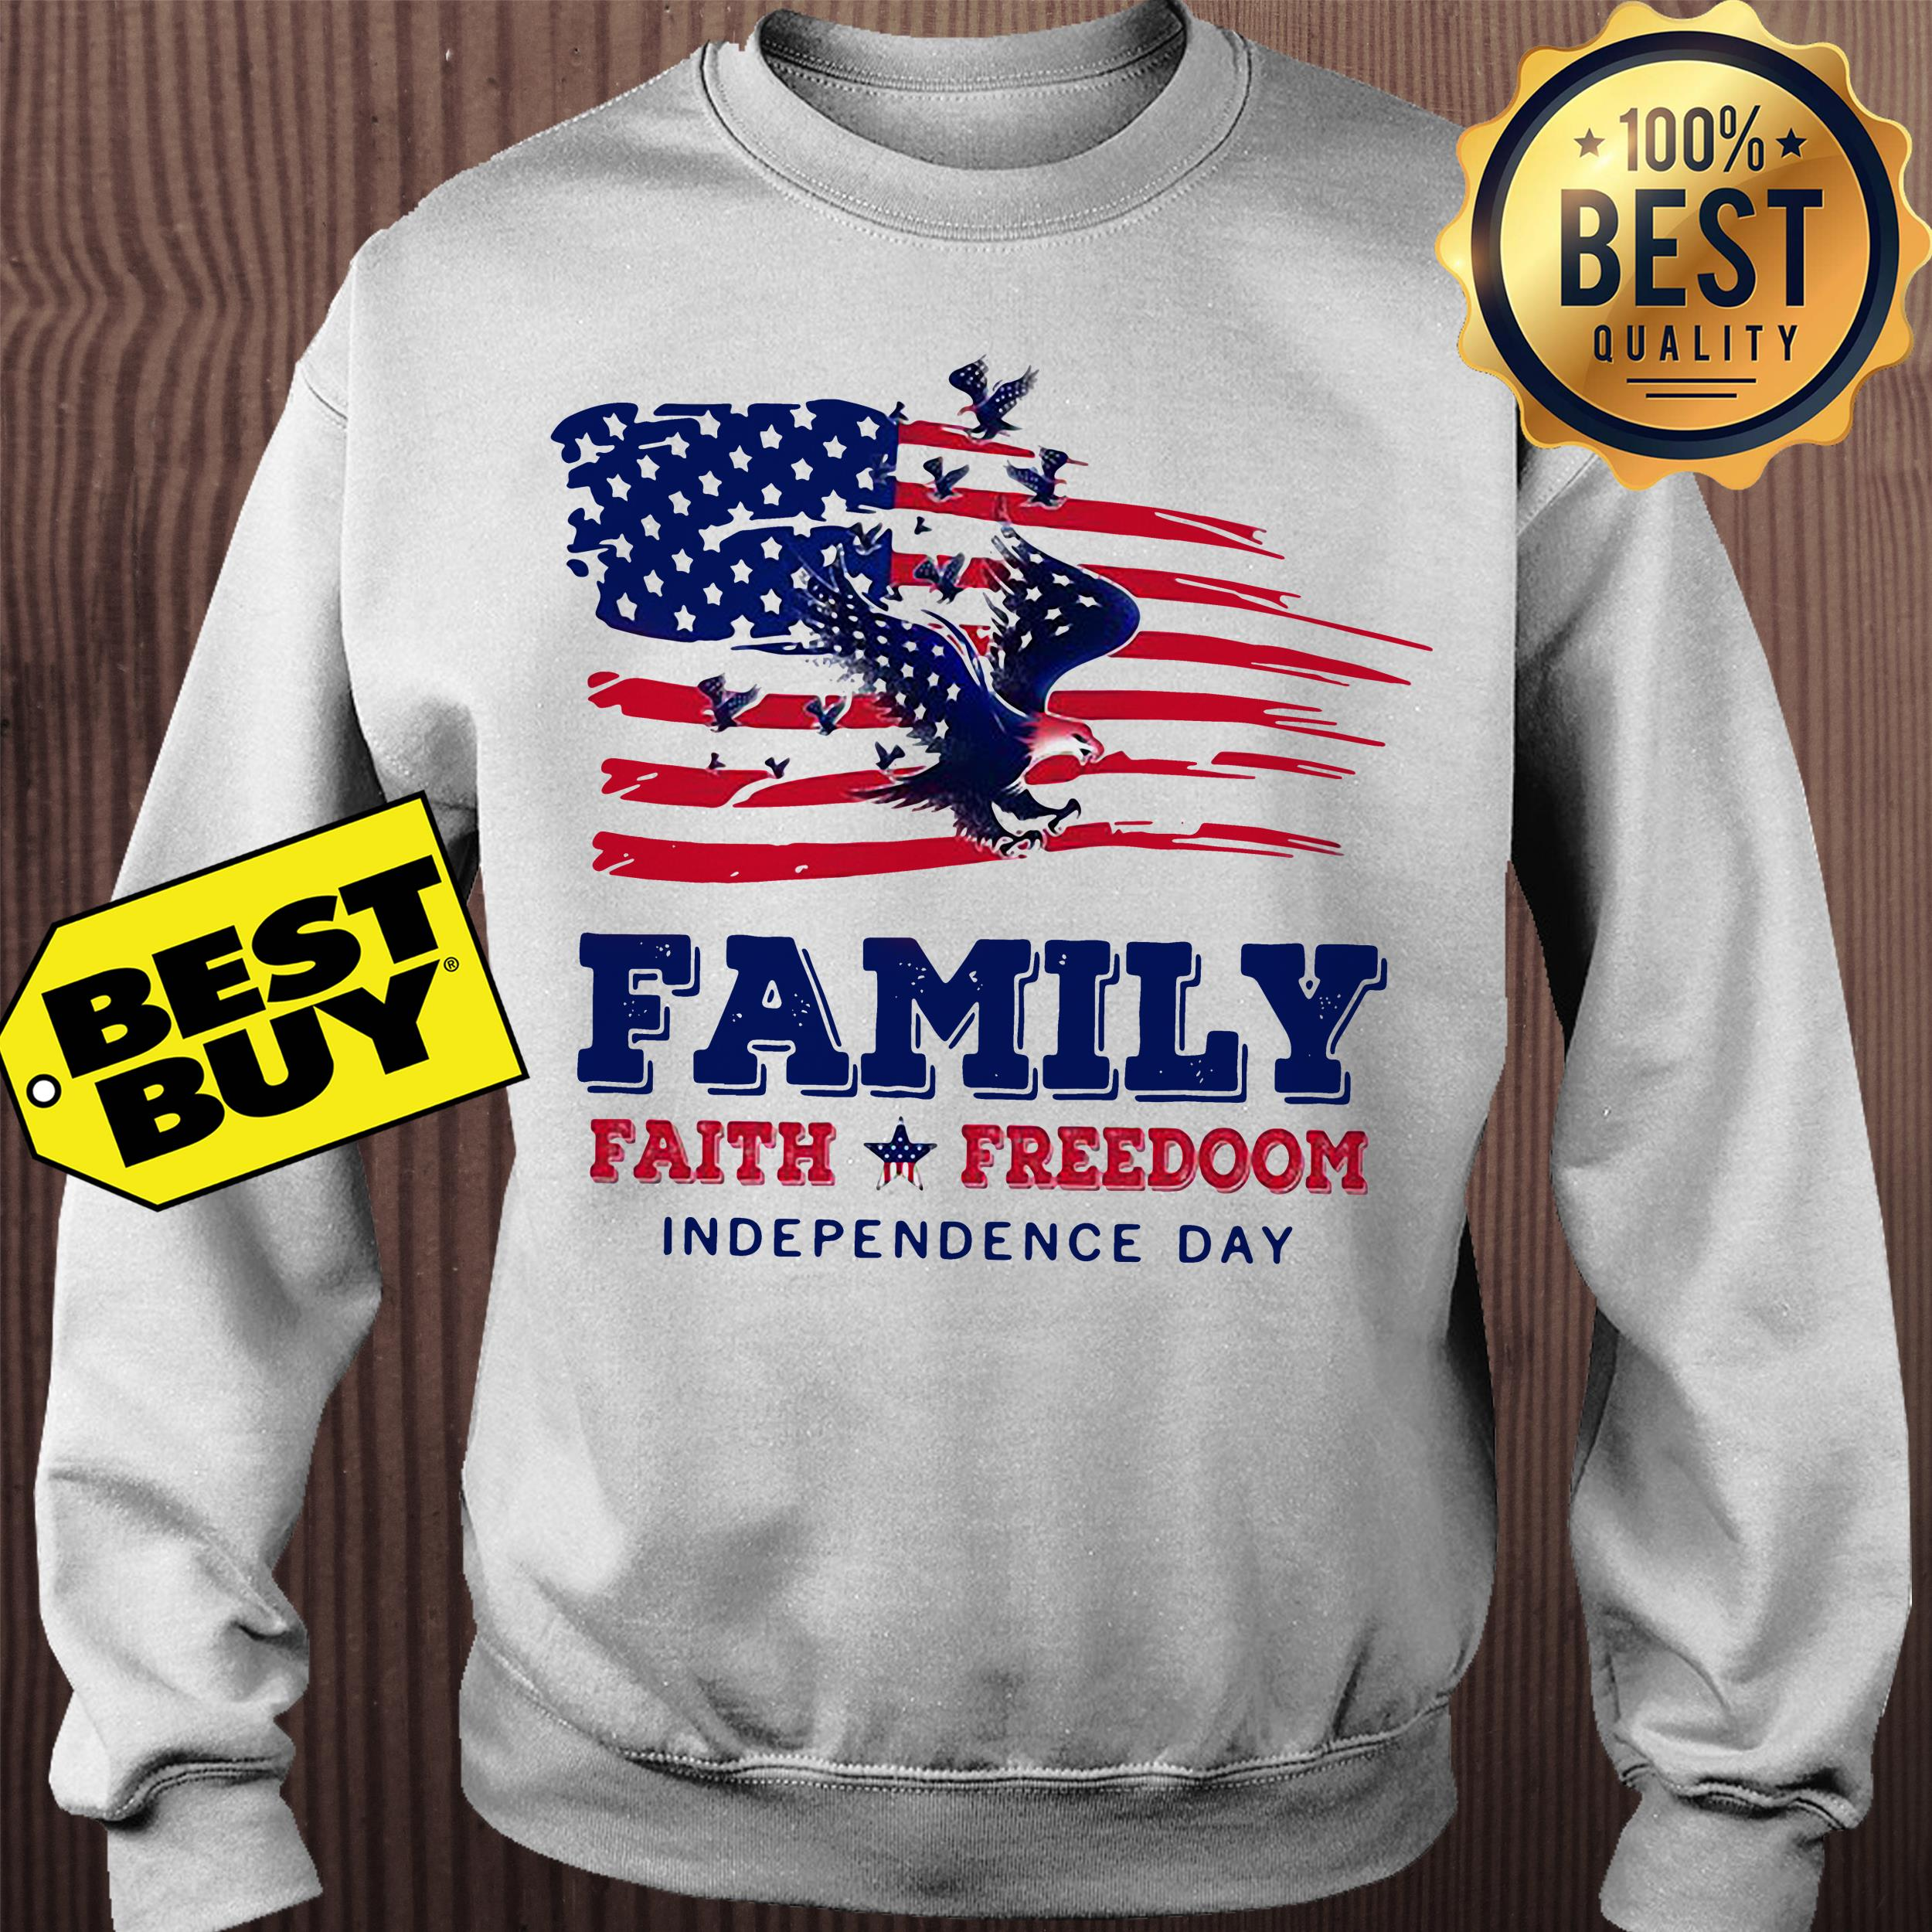 Family faith Freedoom Independence day American flag sweatshirt